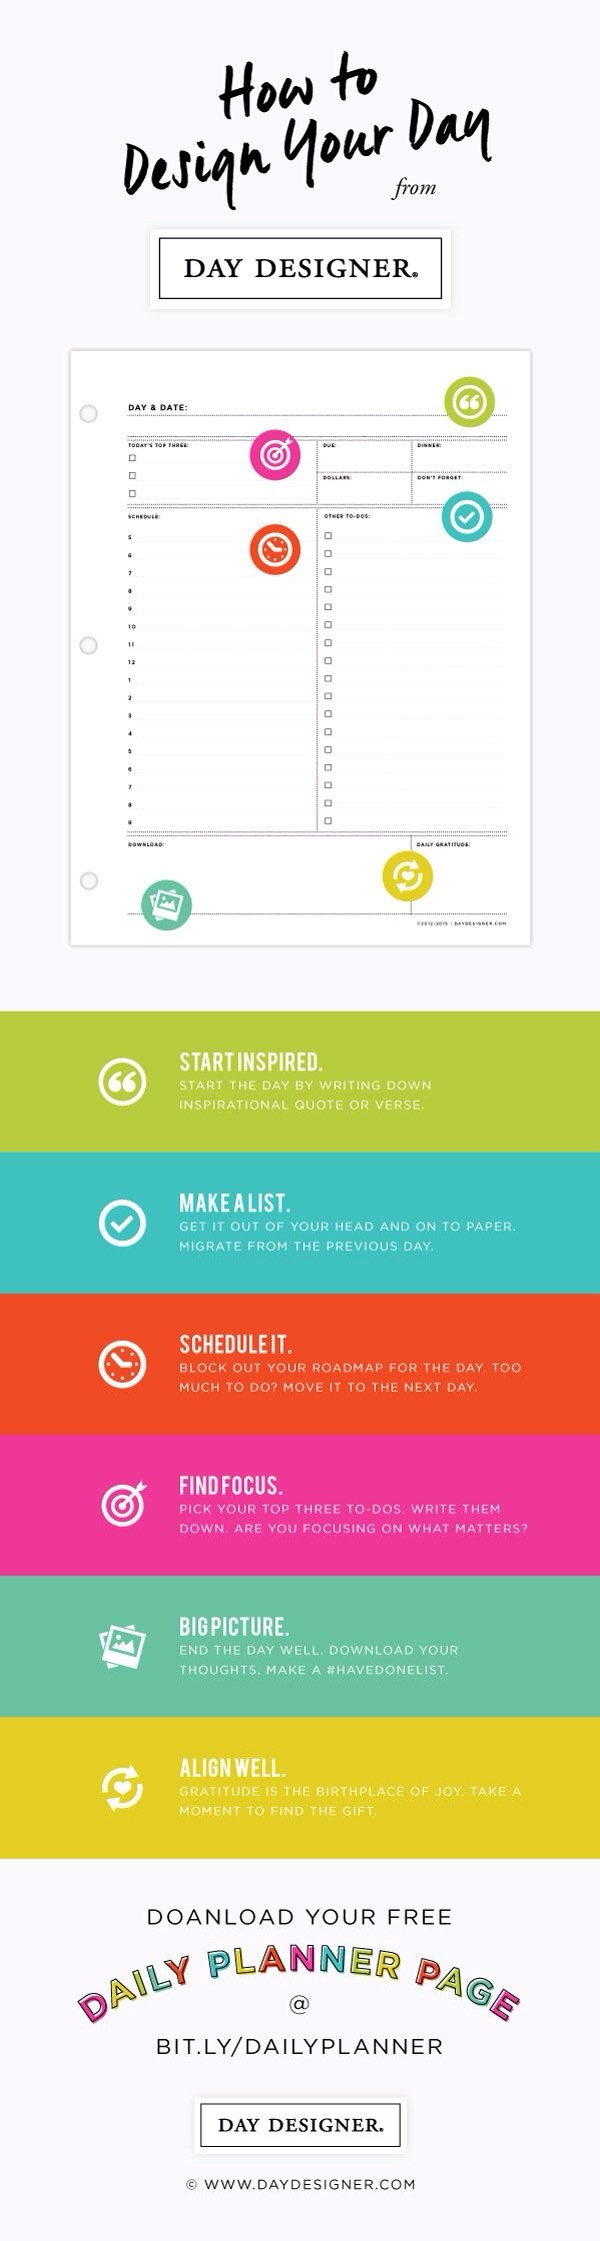 How the Day Designer works.